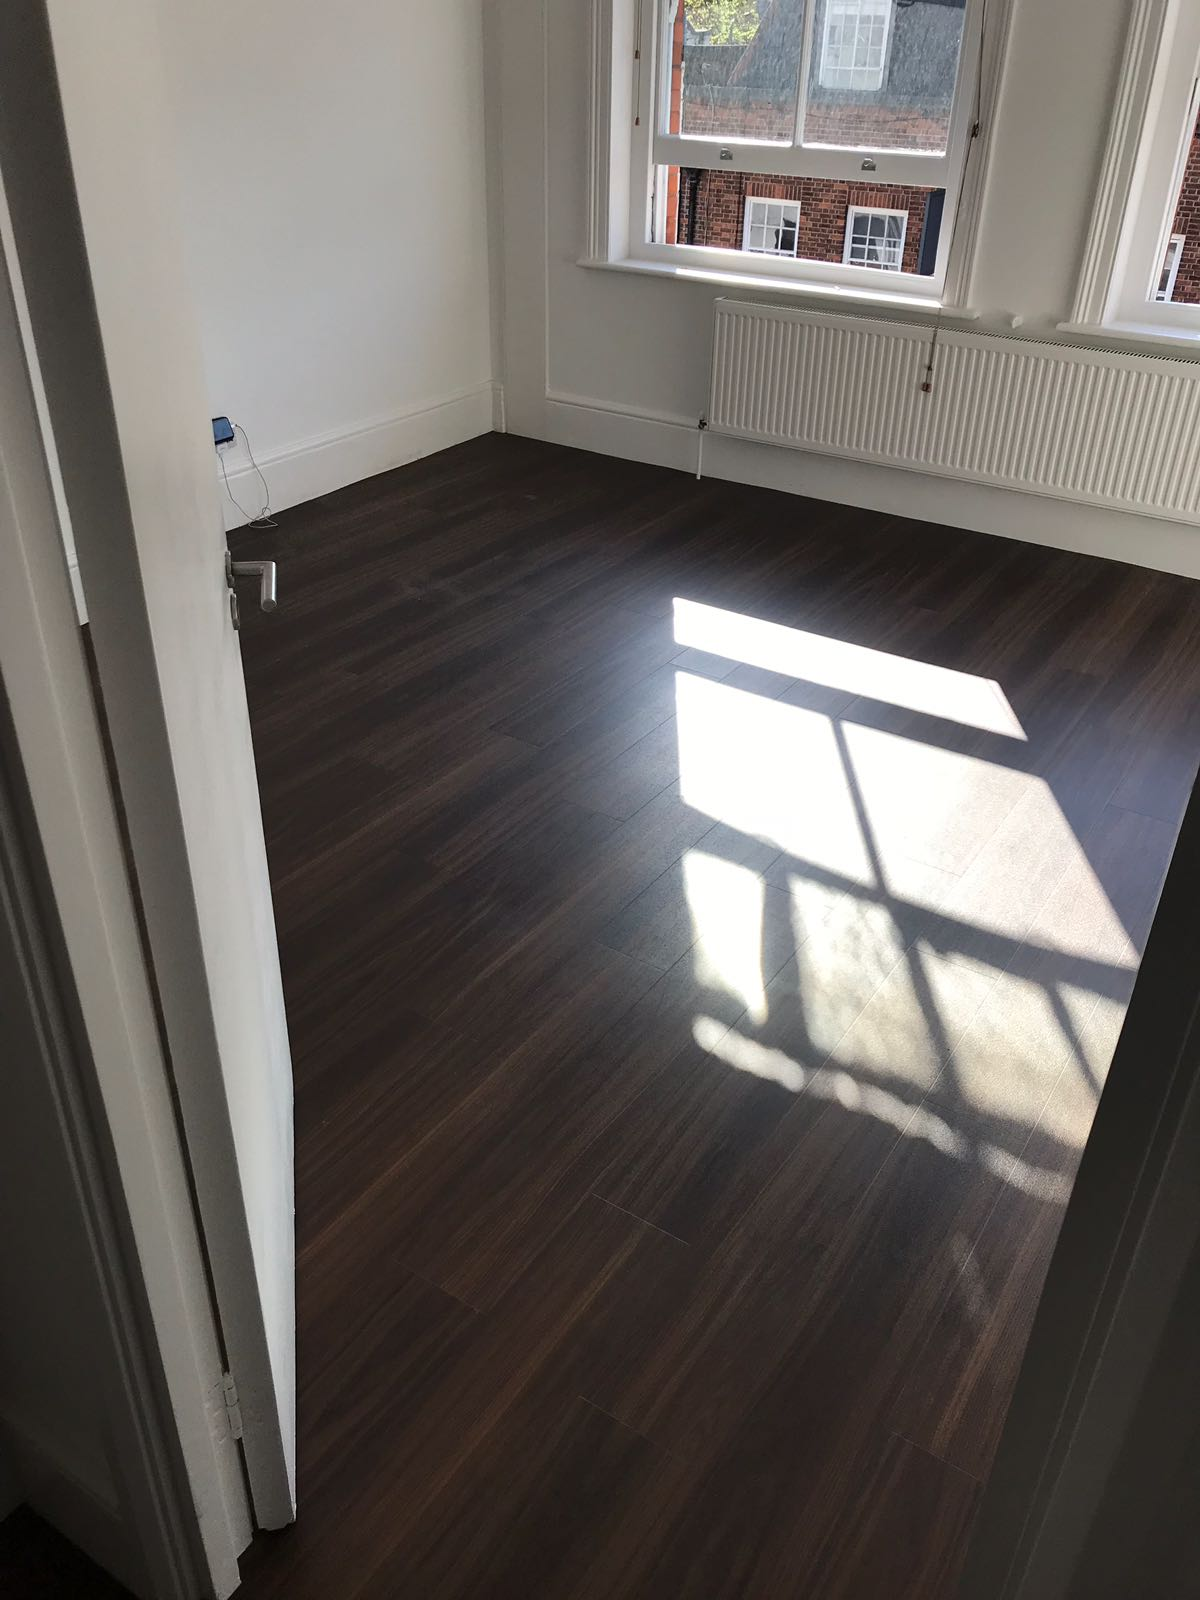 2018-04-24_Amtico Flooring Installed In Chelsea Residence (15)